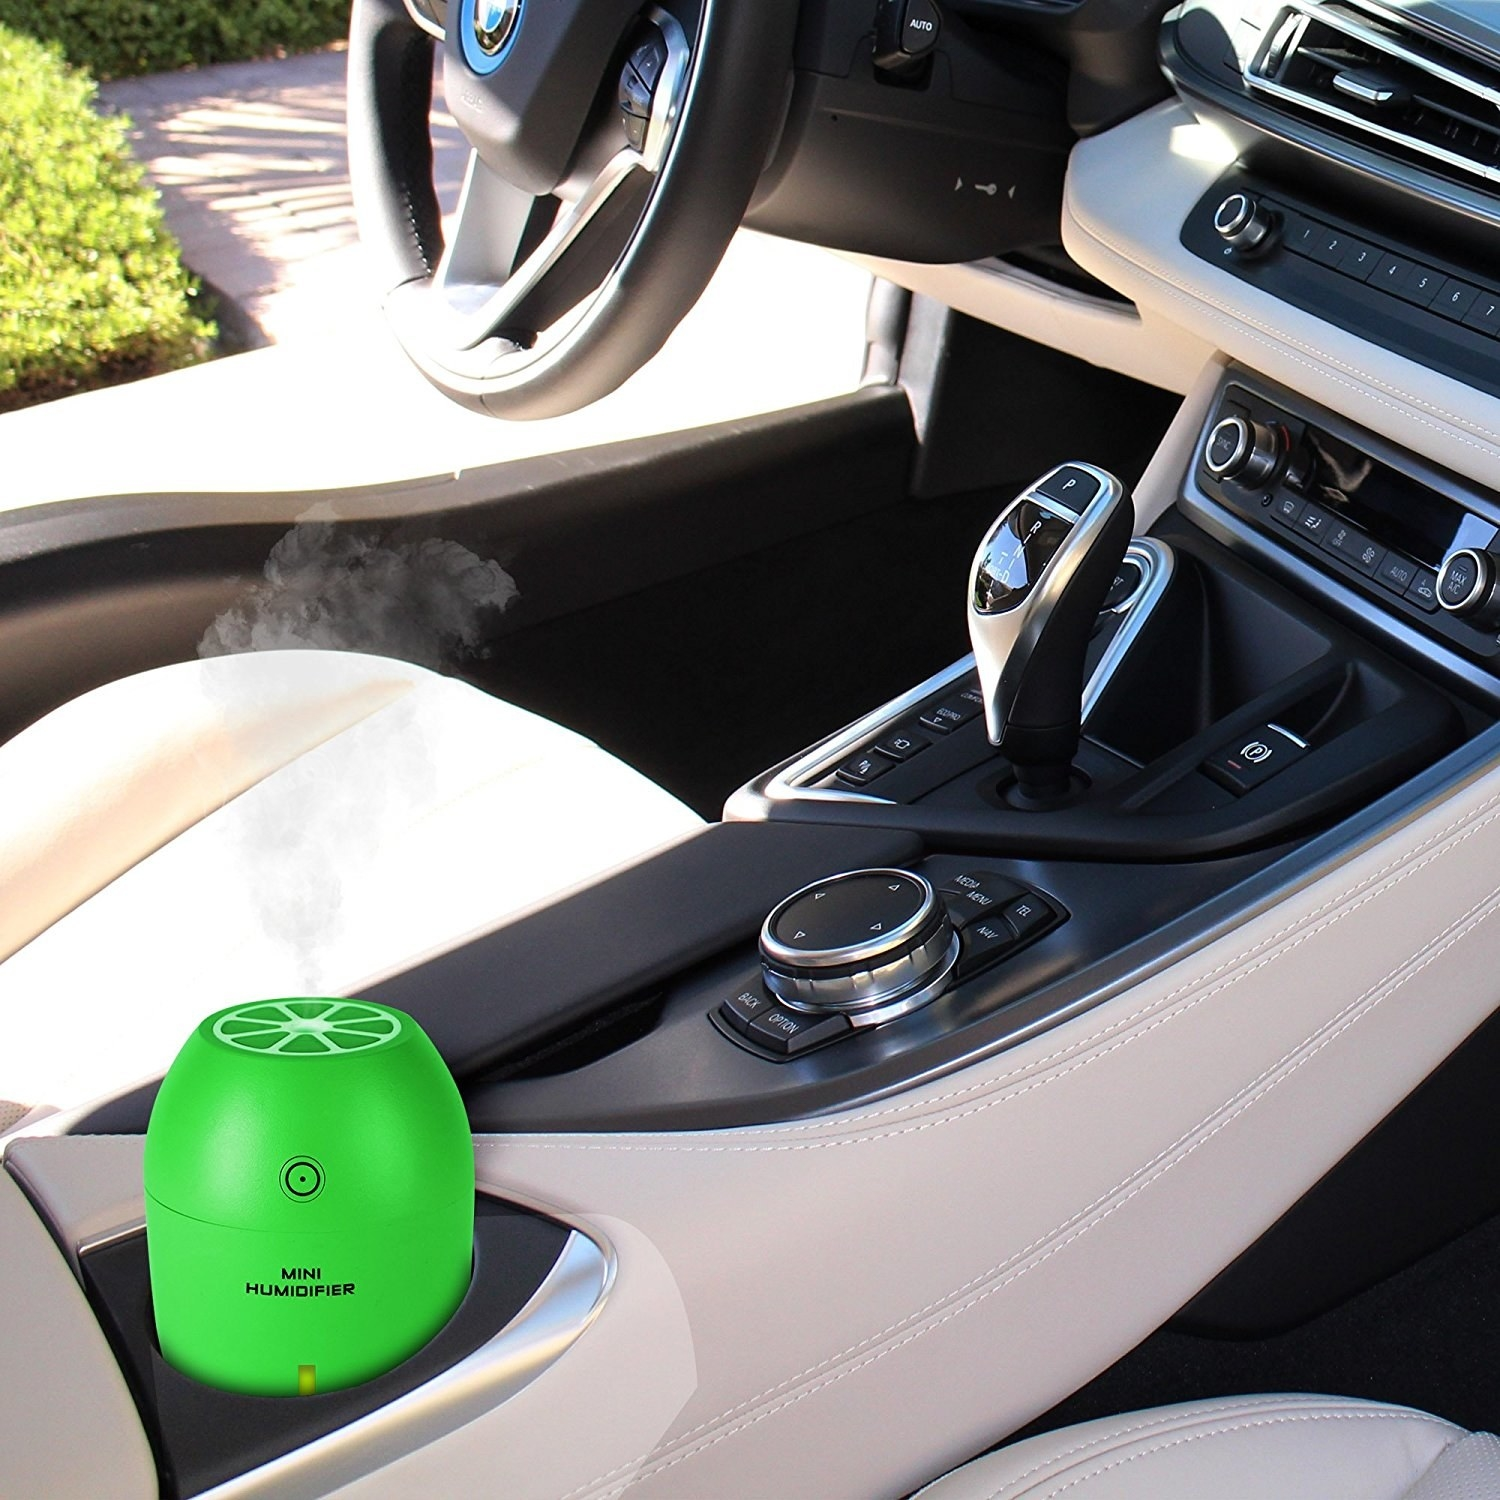 13 A Portable Lime Humidifier Thatll Make Your Passengers Green With Envy Because They Dont Have This Adorable Little Gadget